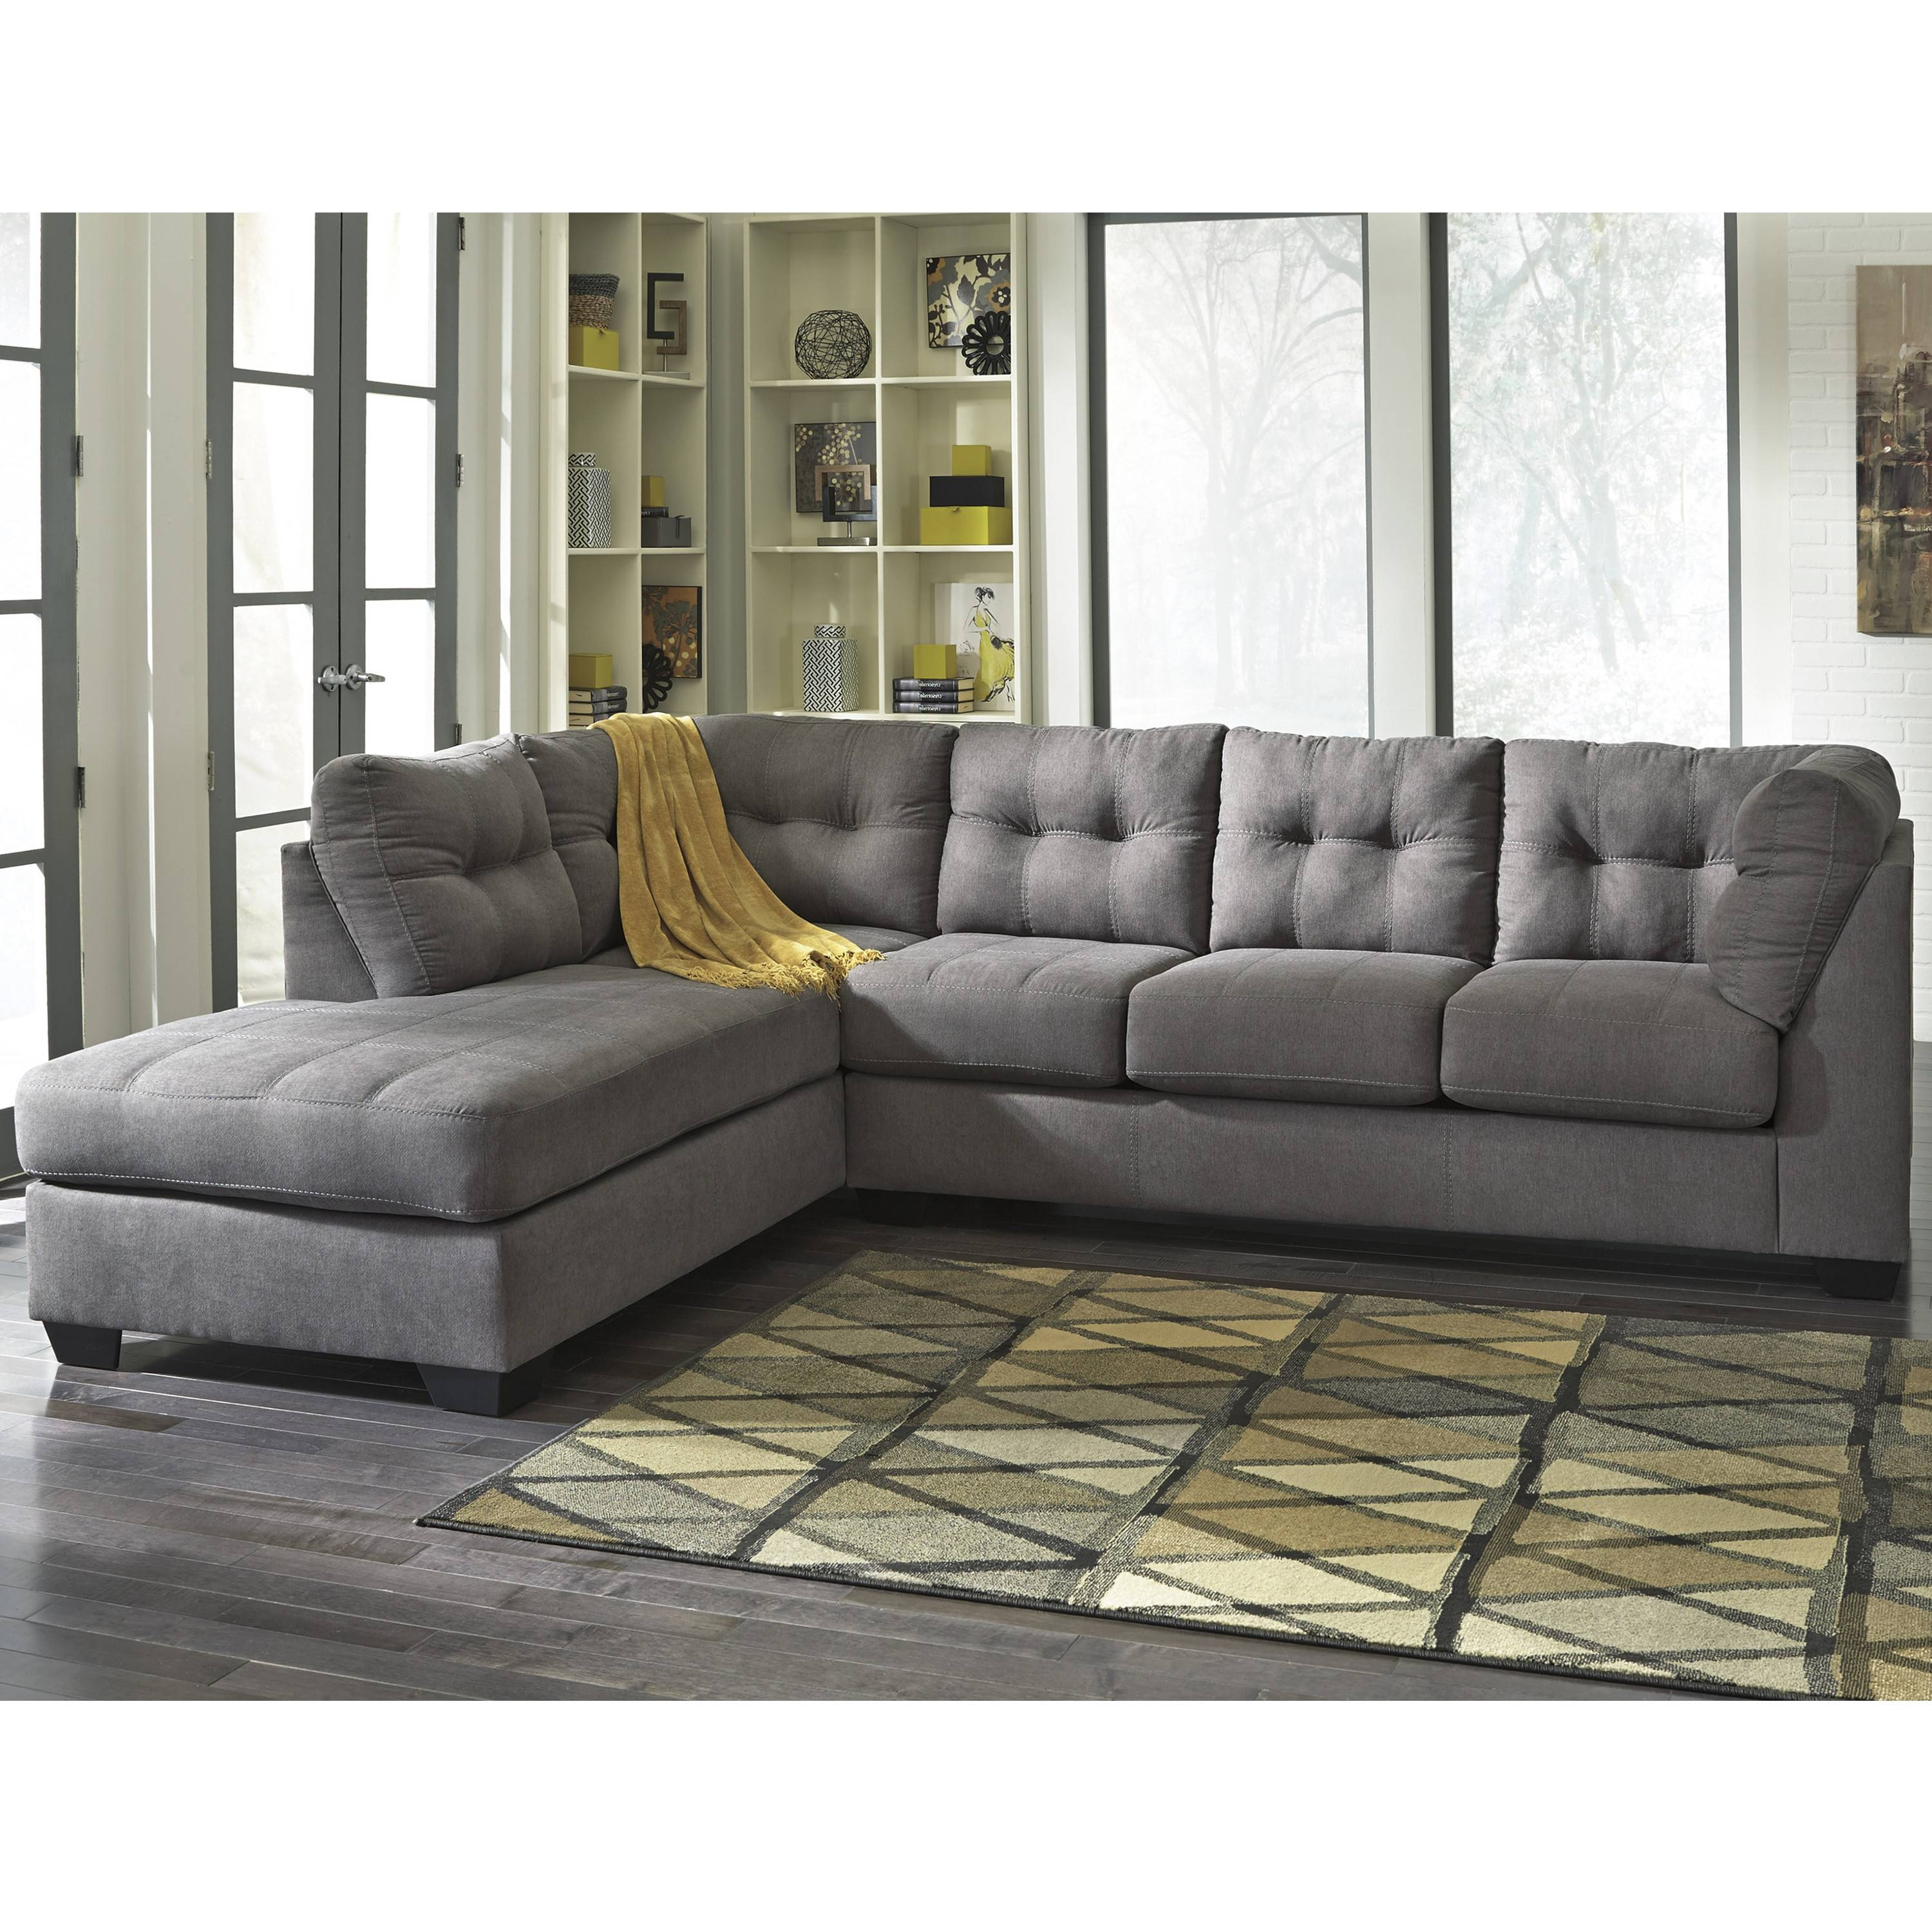 Sofas Center : Sofas Center Sofa With Cuddler And Chaise Discount throughout Sectional Sofa With Cuddler Chaise (Image 23 of 25)